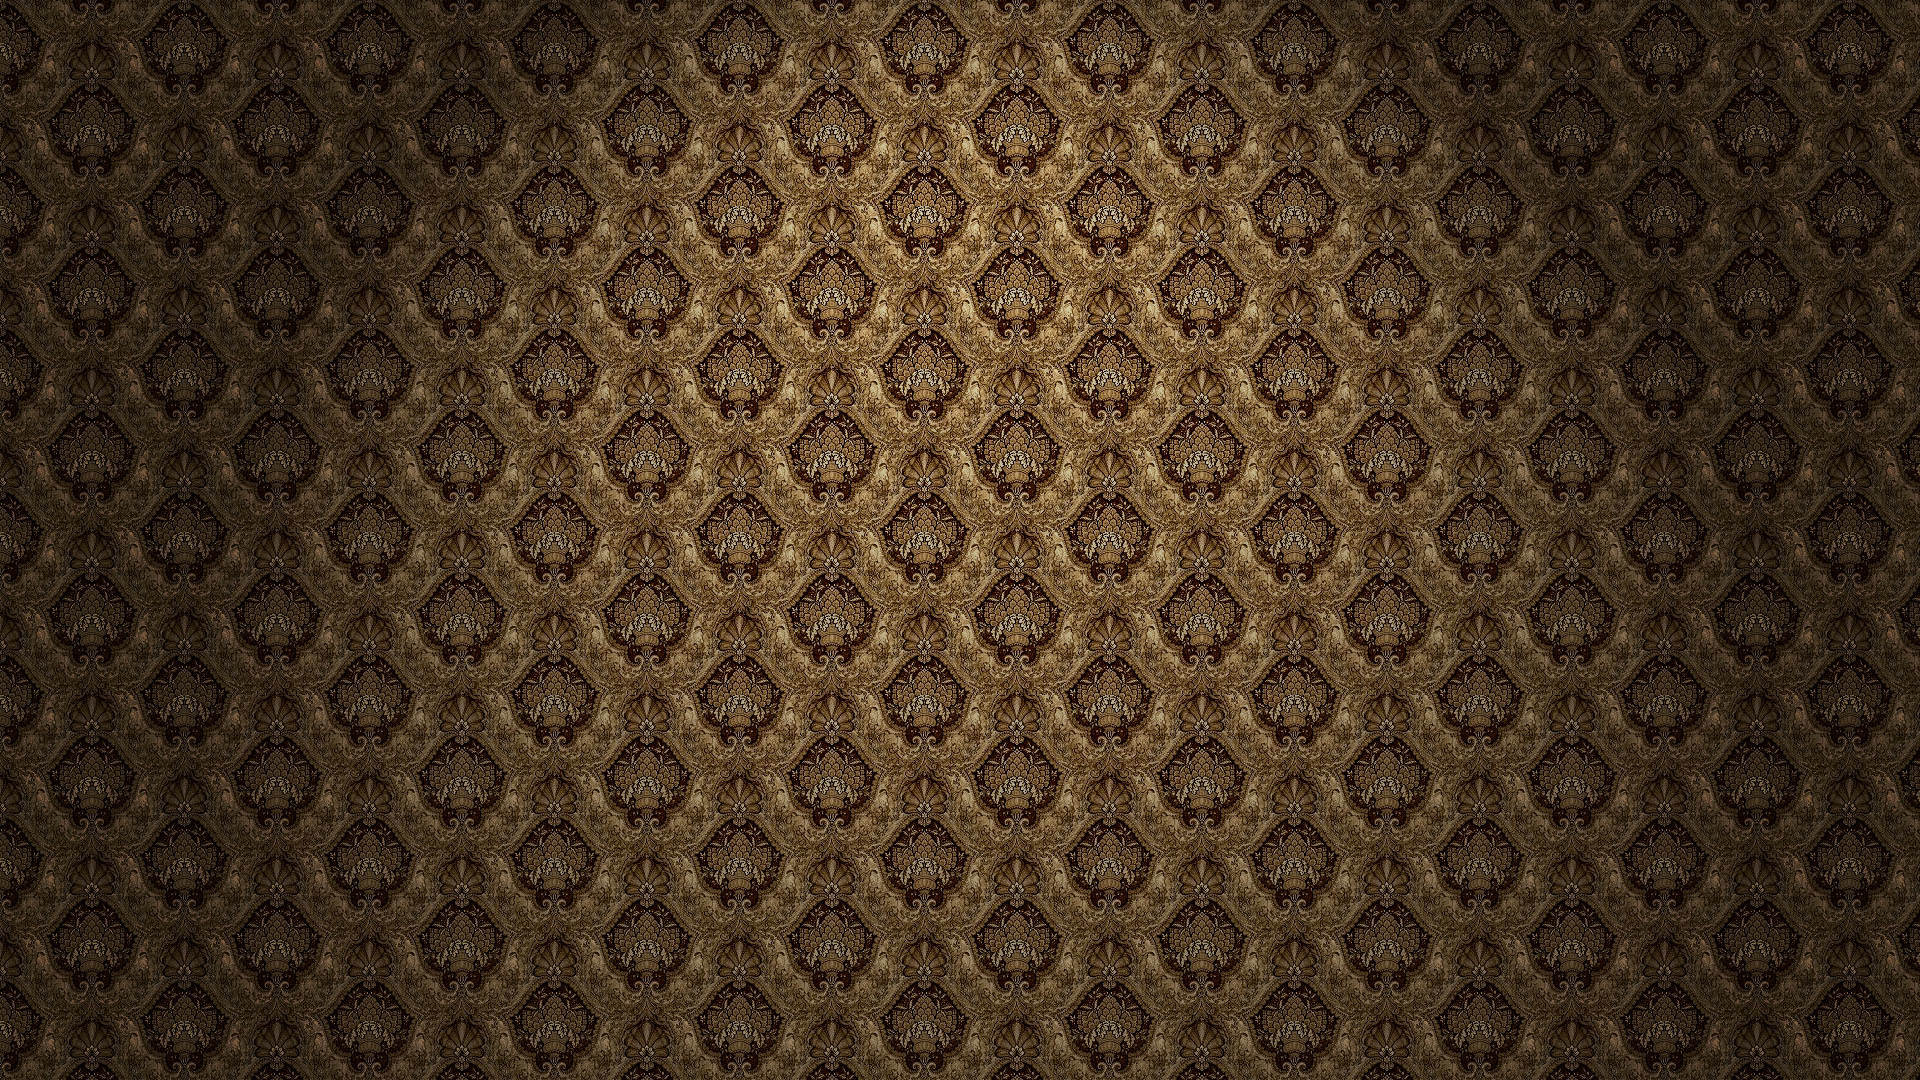 This is a Gold and Black Pattern wallpaper. This Gold and Black Pattern